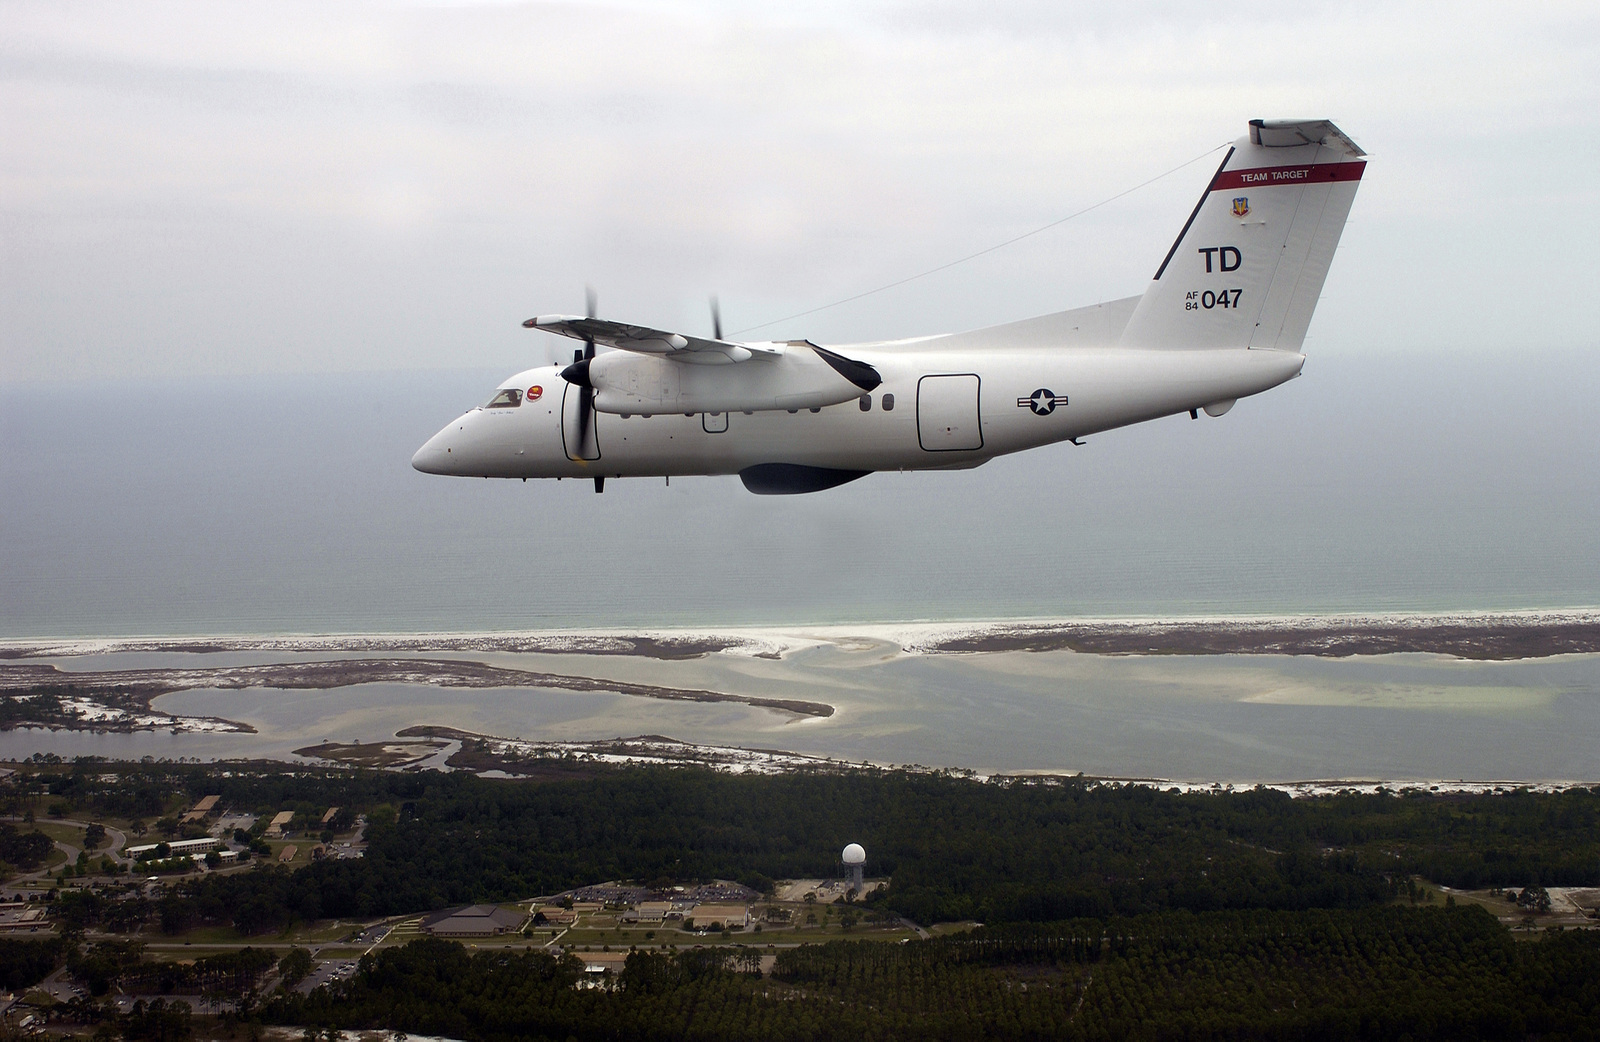 A US Air Force (USAF) E-9A Widget, a unique test support asset flown by the 82nd Aerial Targets Squadron (ATS), Tyndall Air Force Base (AFB), Florida (FL). This E-9A is one of only two aircraft in the USAF inventory and is used as an airborne platform and telemetry relay aircraft to provide ocean surface surveillance and to relay missile and target telemetry of missiles fired in over the horizon profiles on the Gulf Ranges